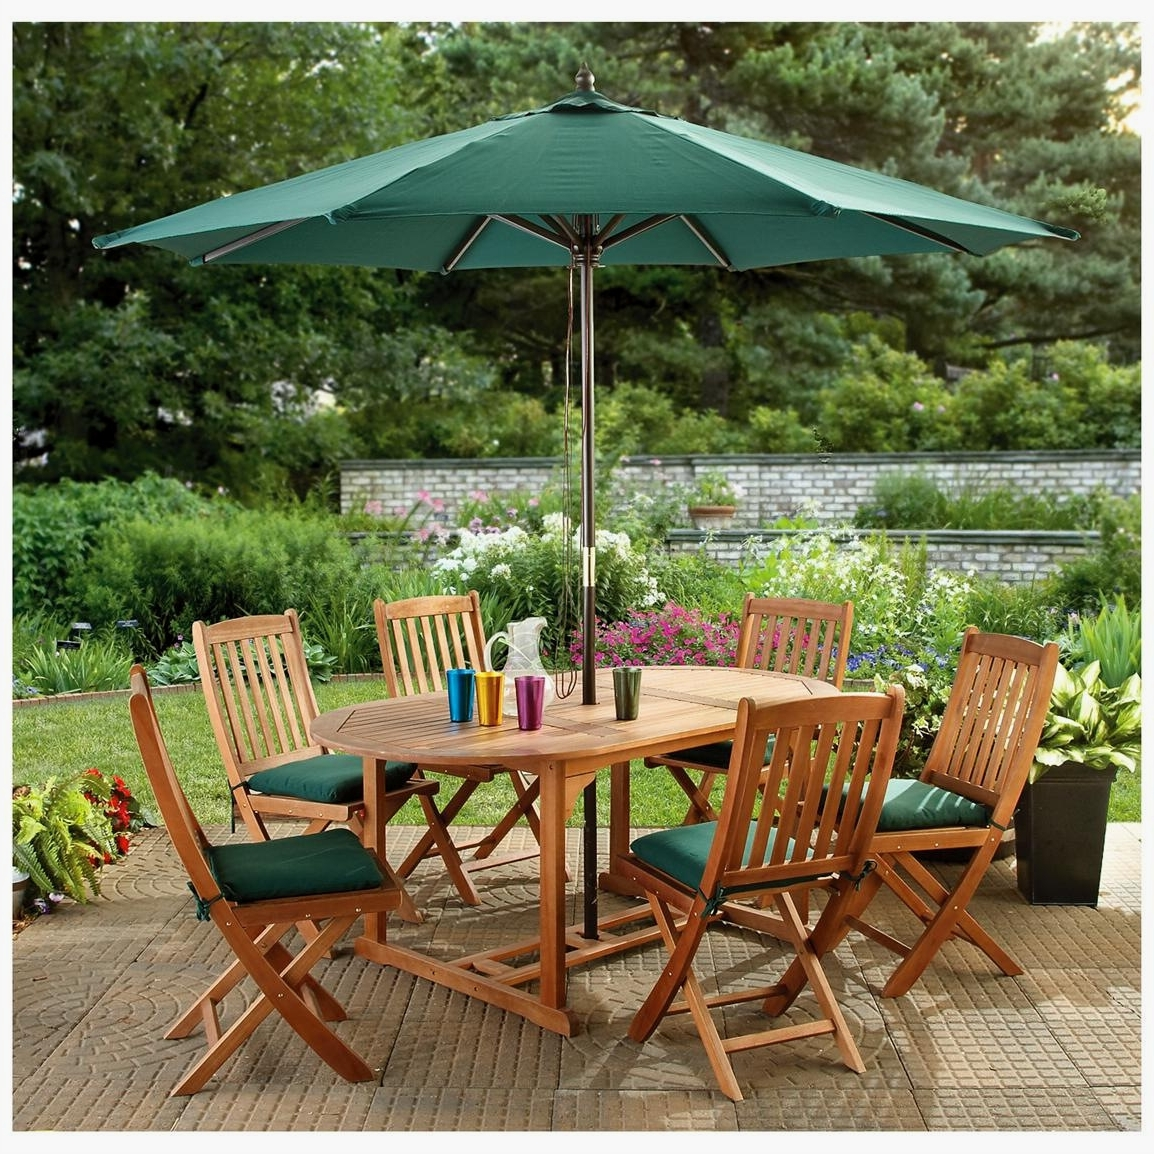 Well Liked Patio Furniture Sets With Umbrellas Inside 51 Awesome Outdoor Furniture Set With Umbrella Collection (View 12 of 20)